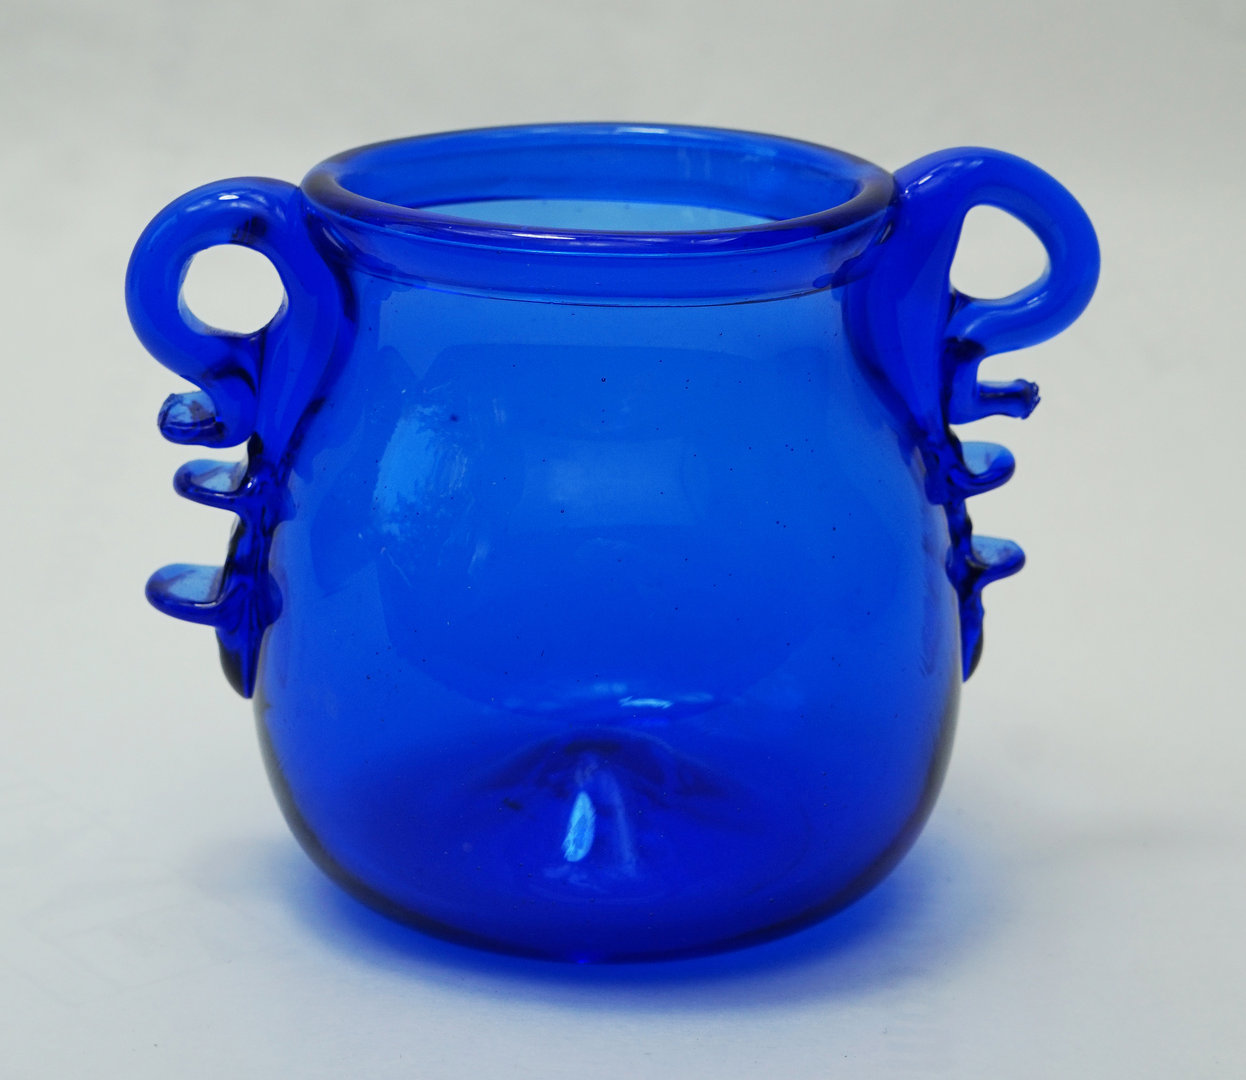 VERRE GALLO-ROMAIN - ARYBALLE  (Bleu roi)